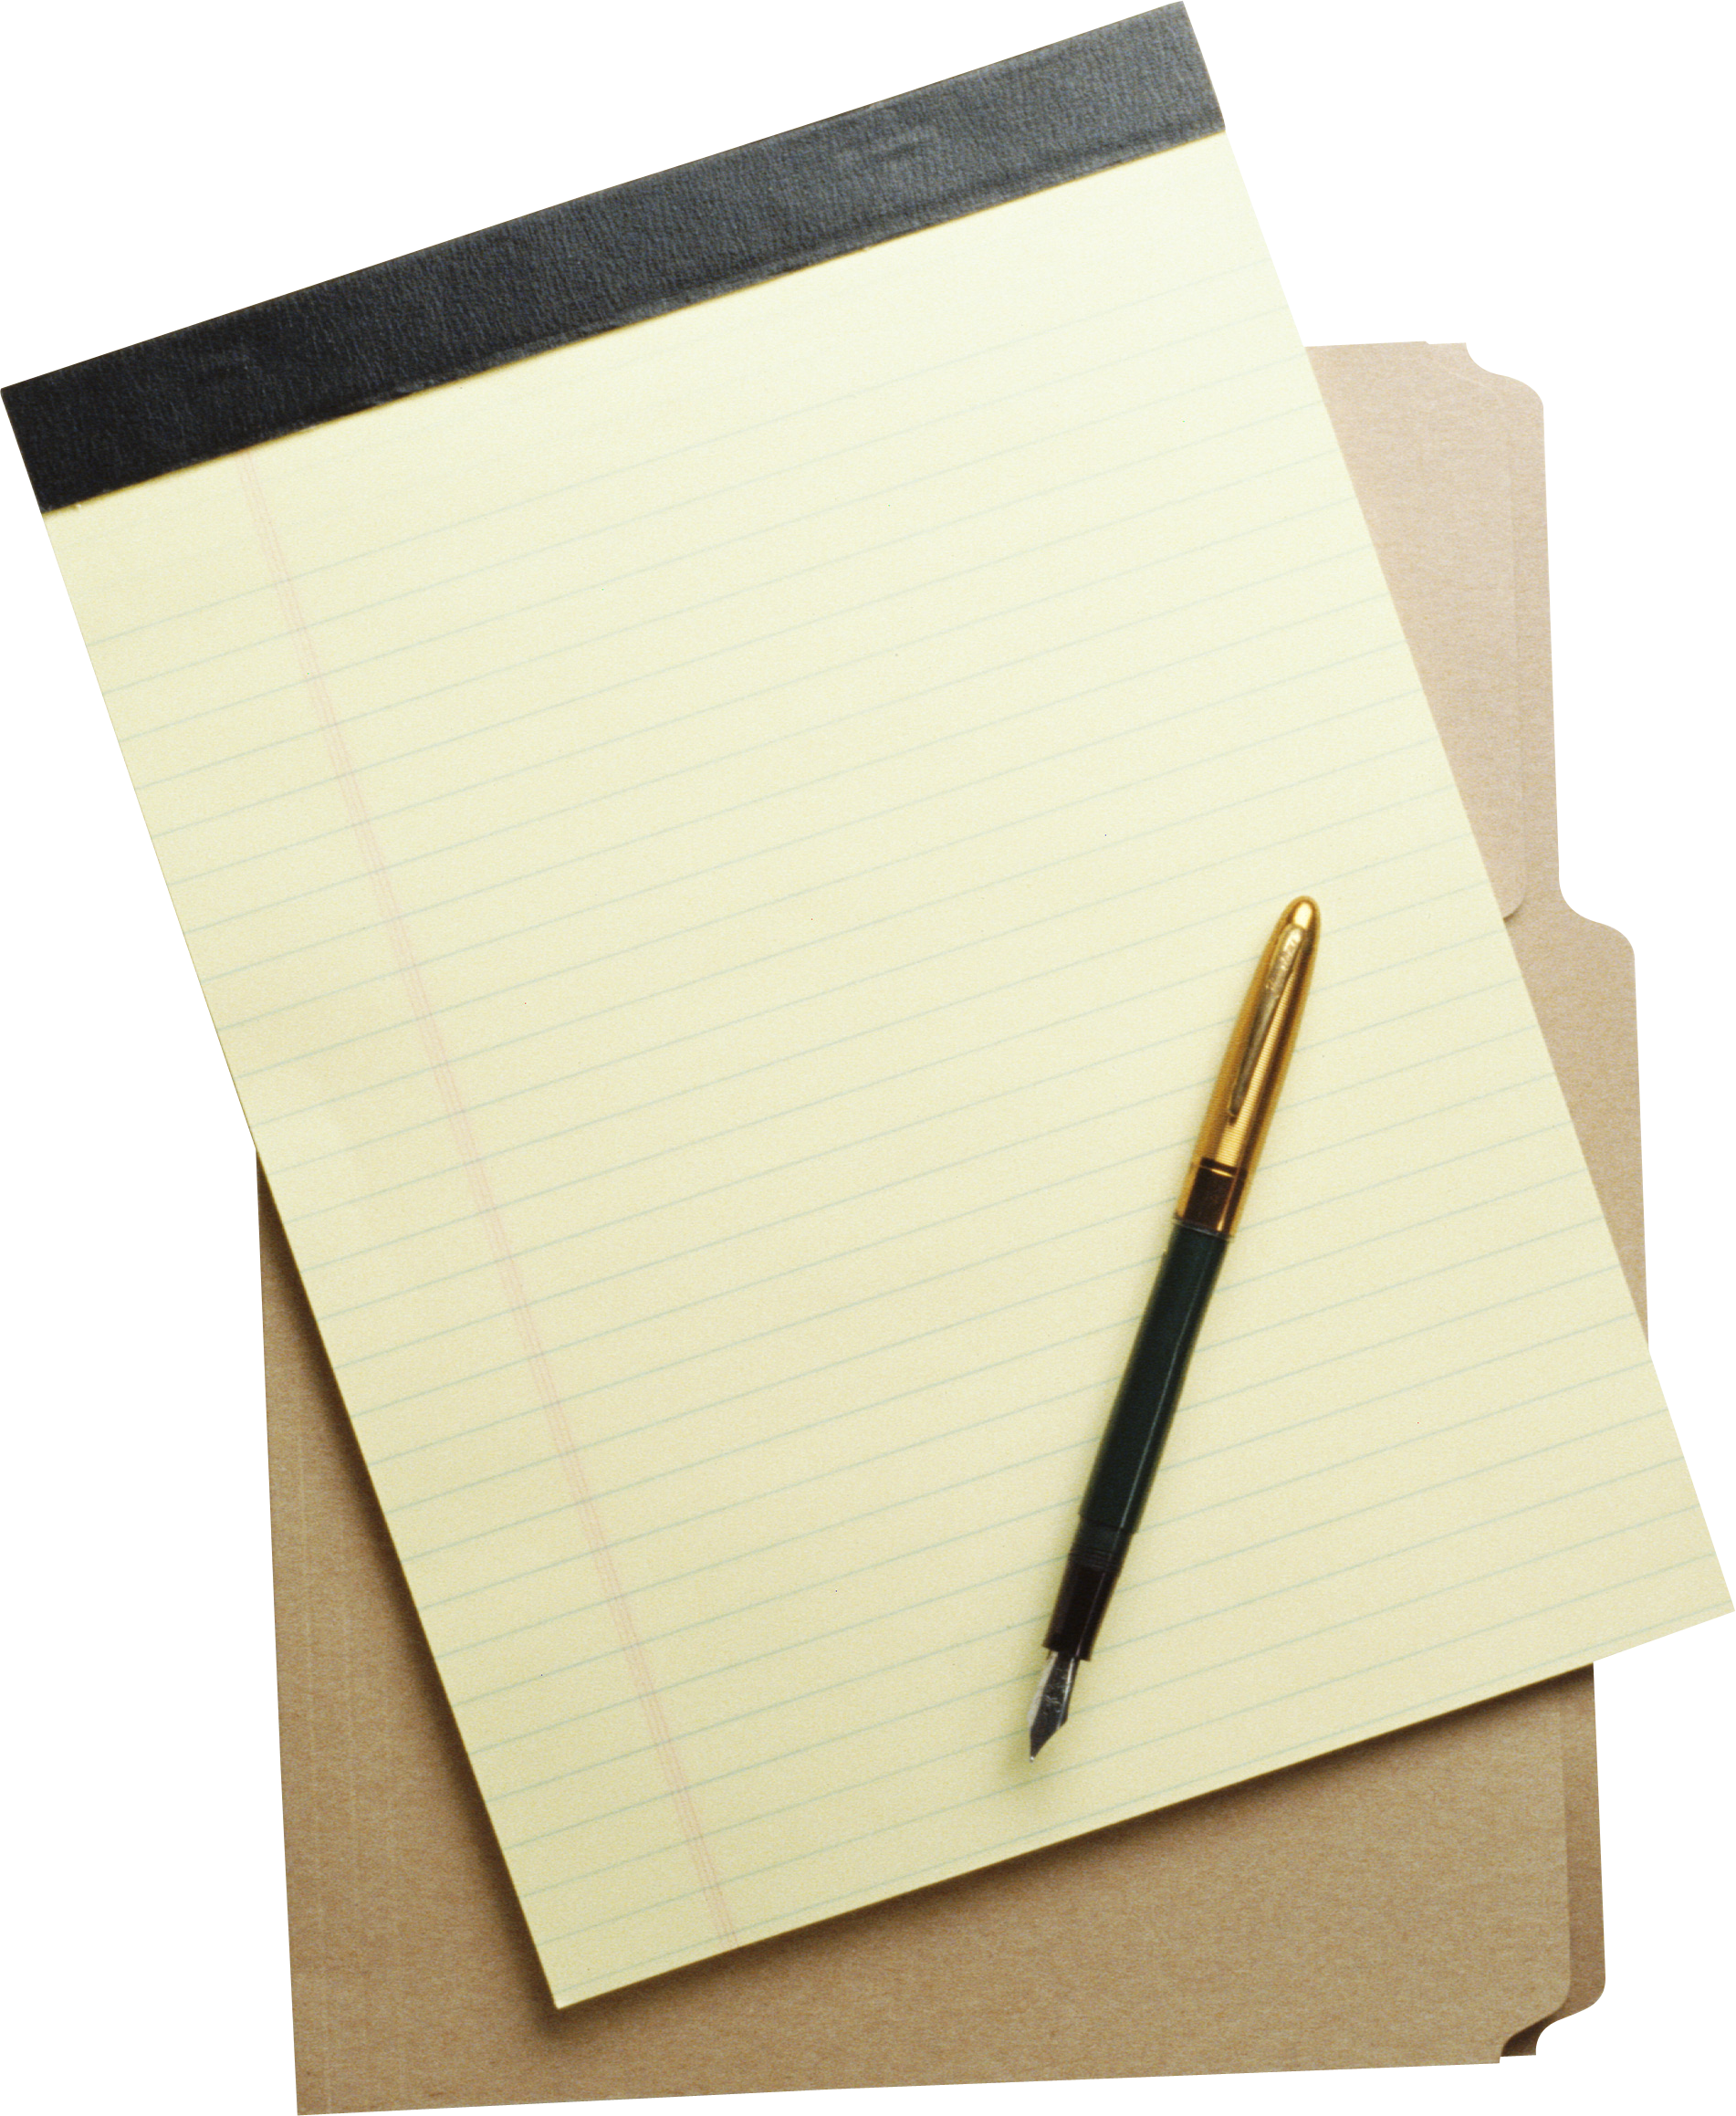 Transparent paper with writing clipart - Paper With Writing Png - Paper .png